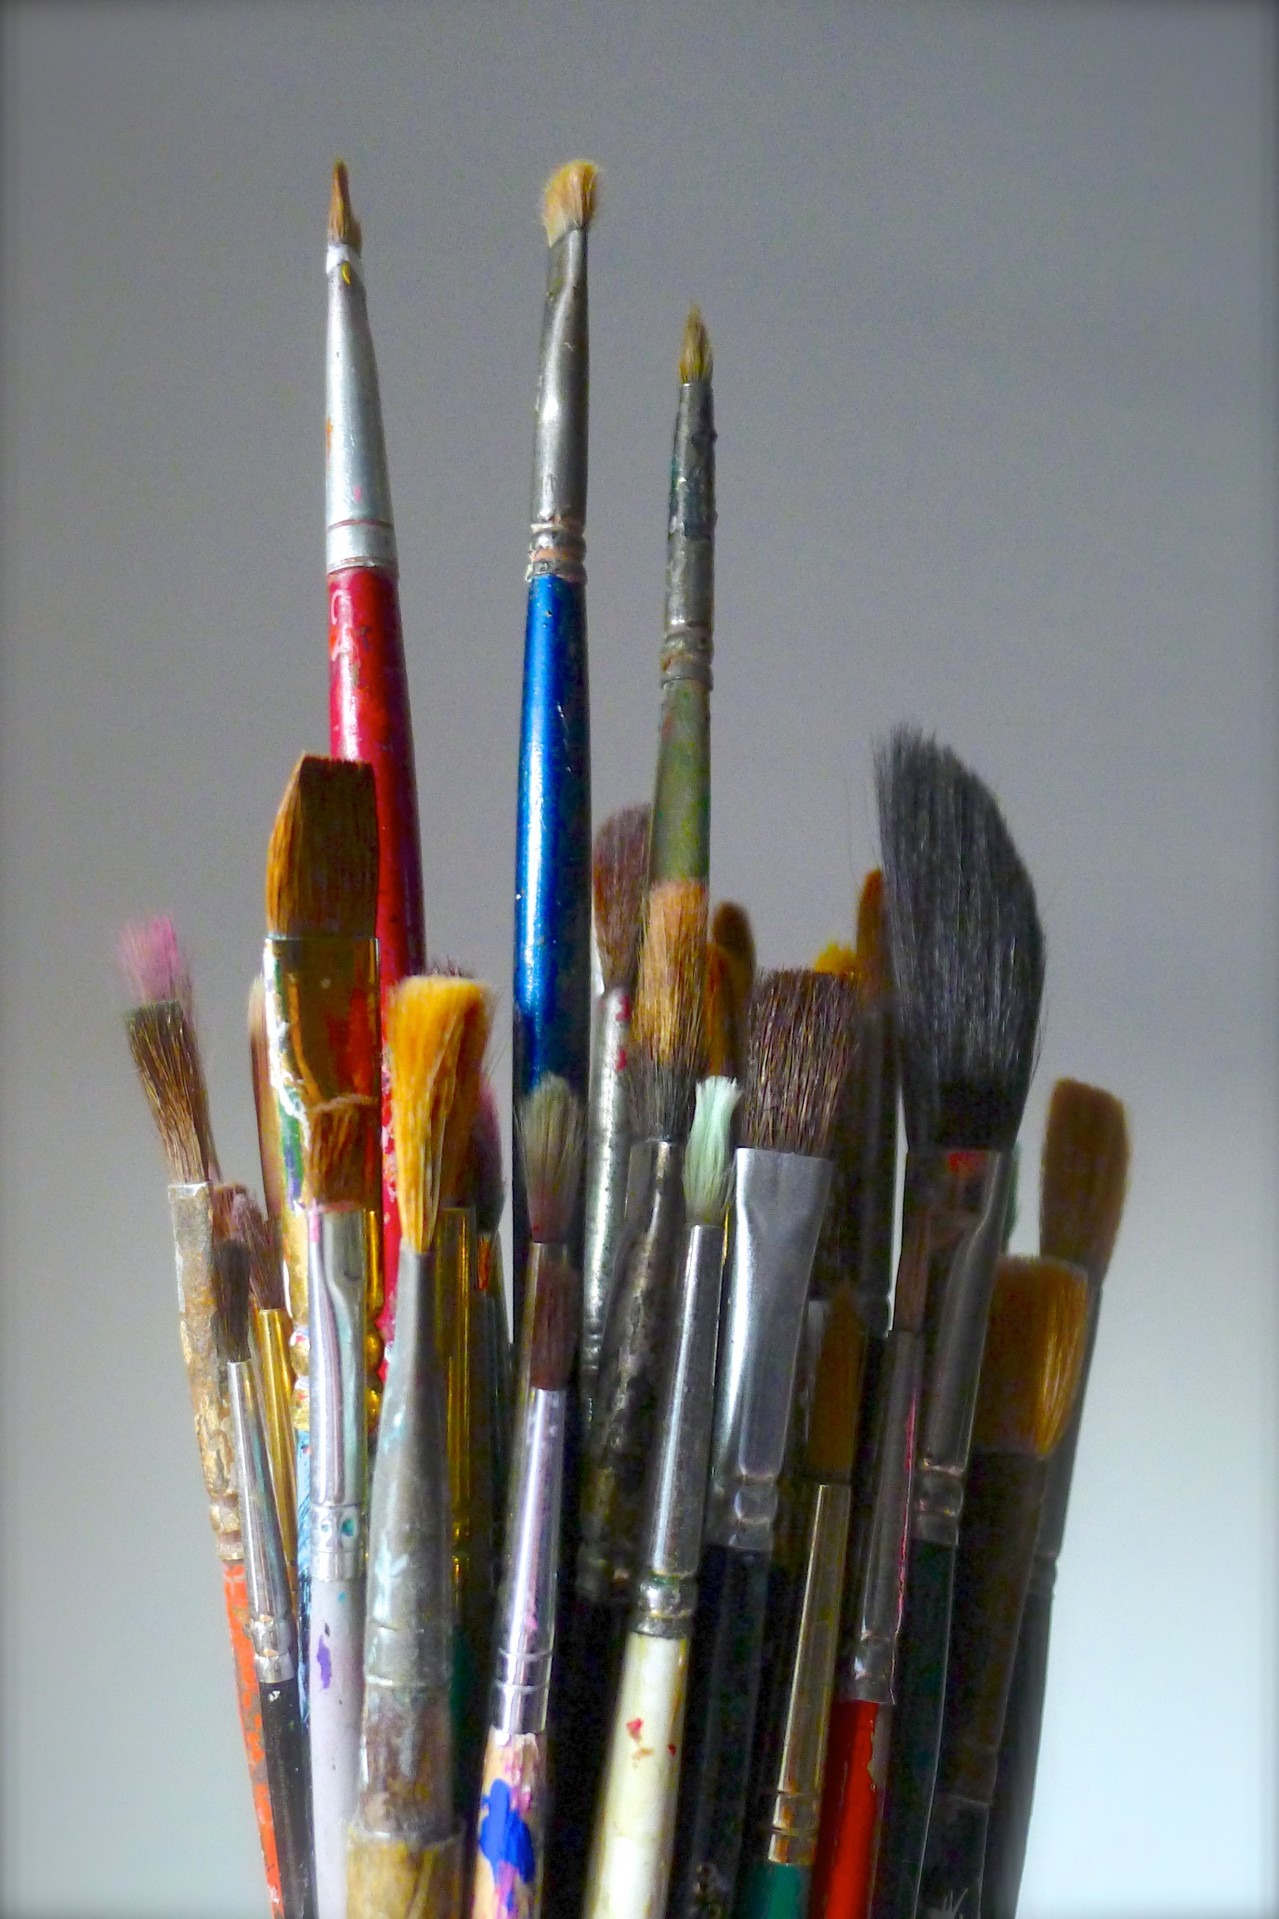 bunch-brush-tool-bouquet-artist-paintbrush-978436-pxhere.com.jpg